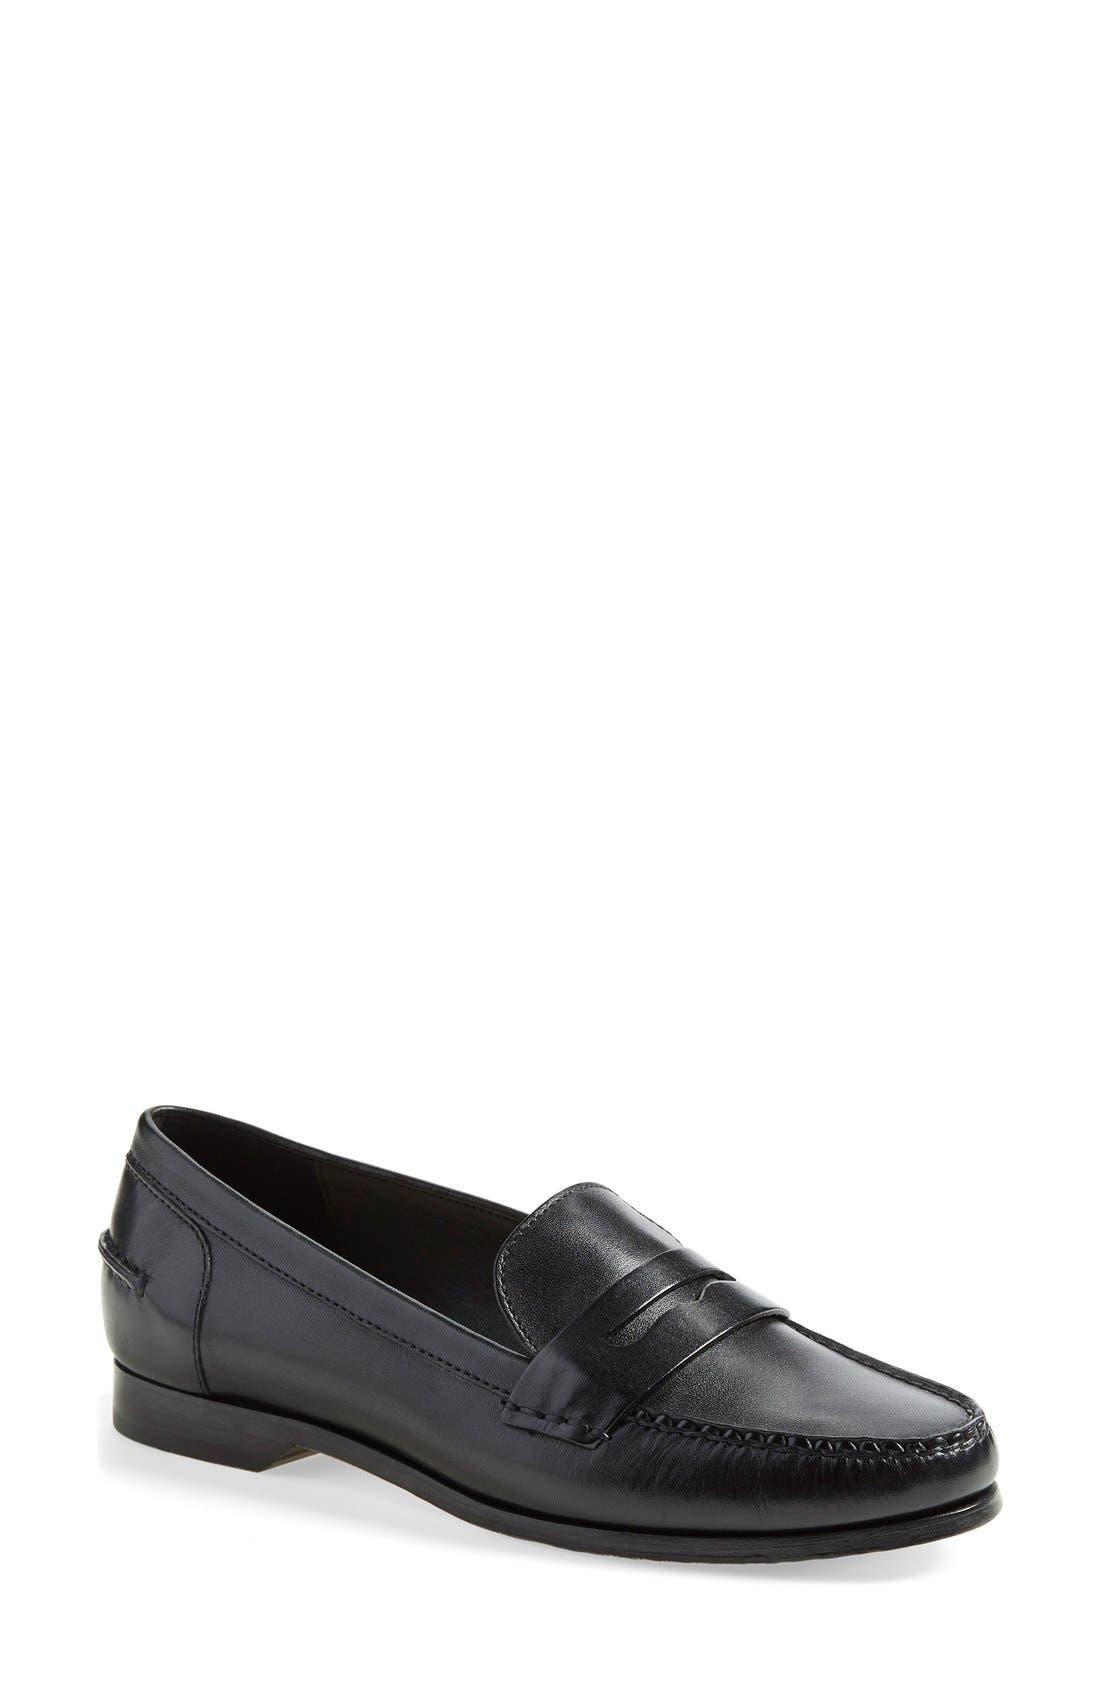 COLE HAAN 'Pinch Grand' Penny Loafer